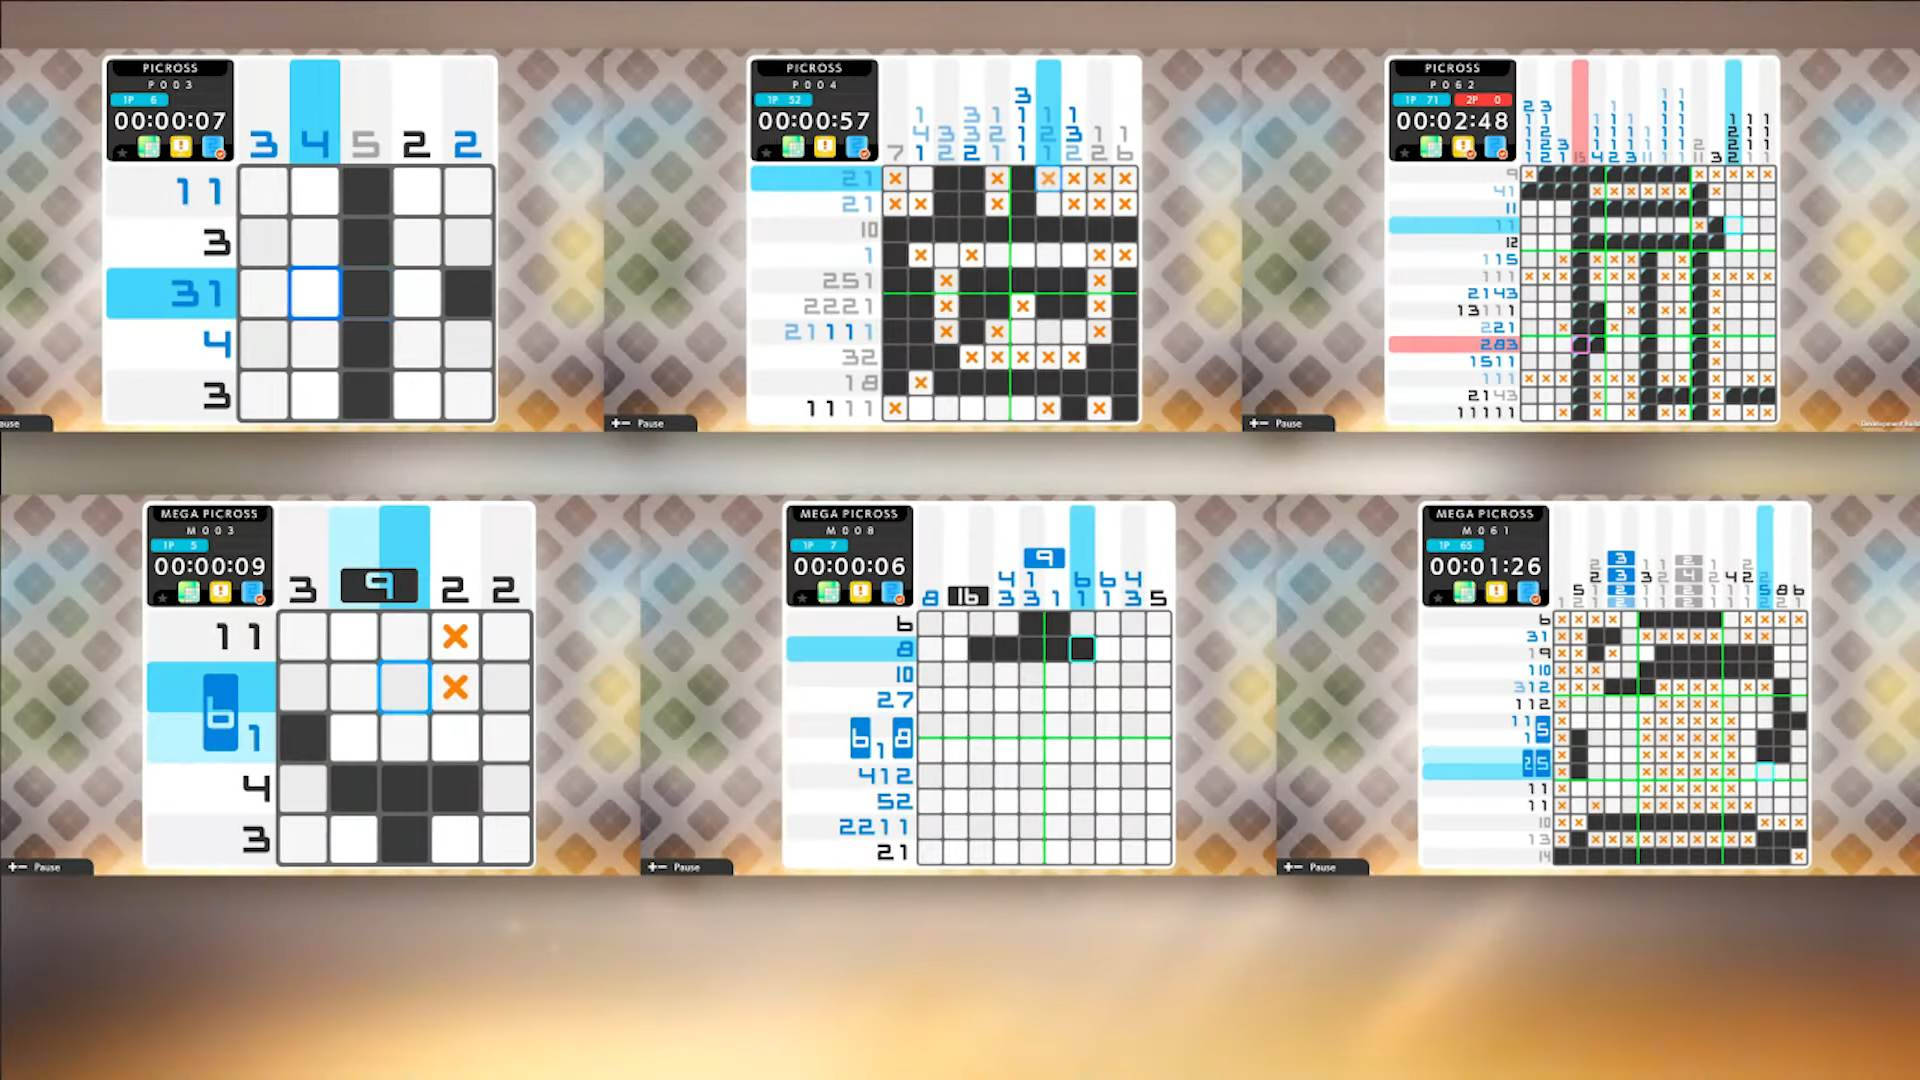 Picross S6 is coming to Switch next week